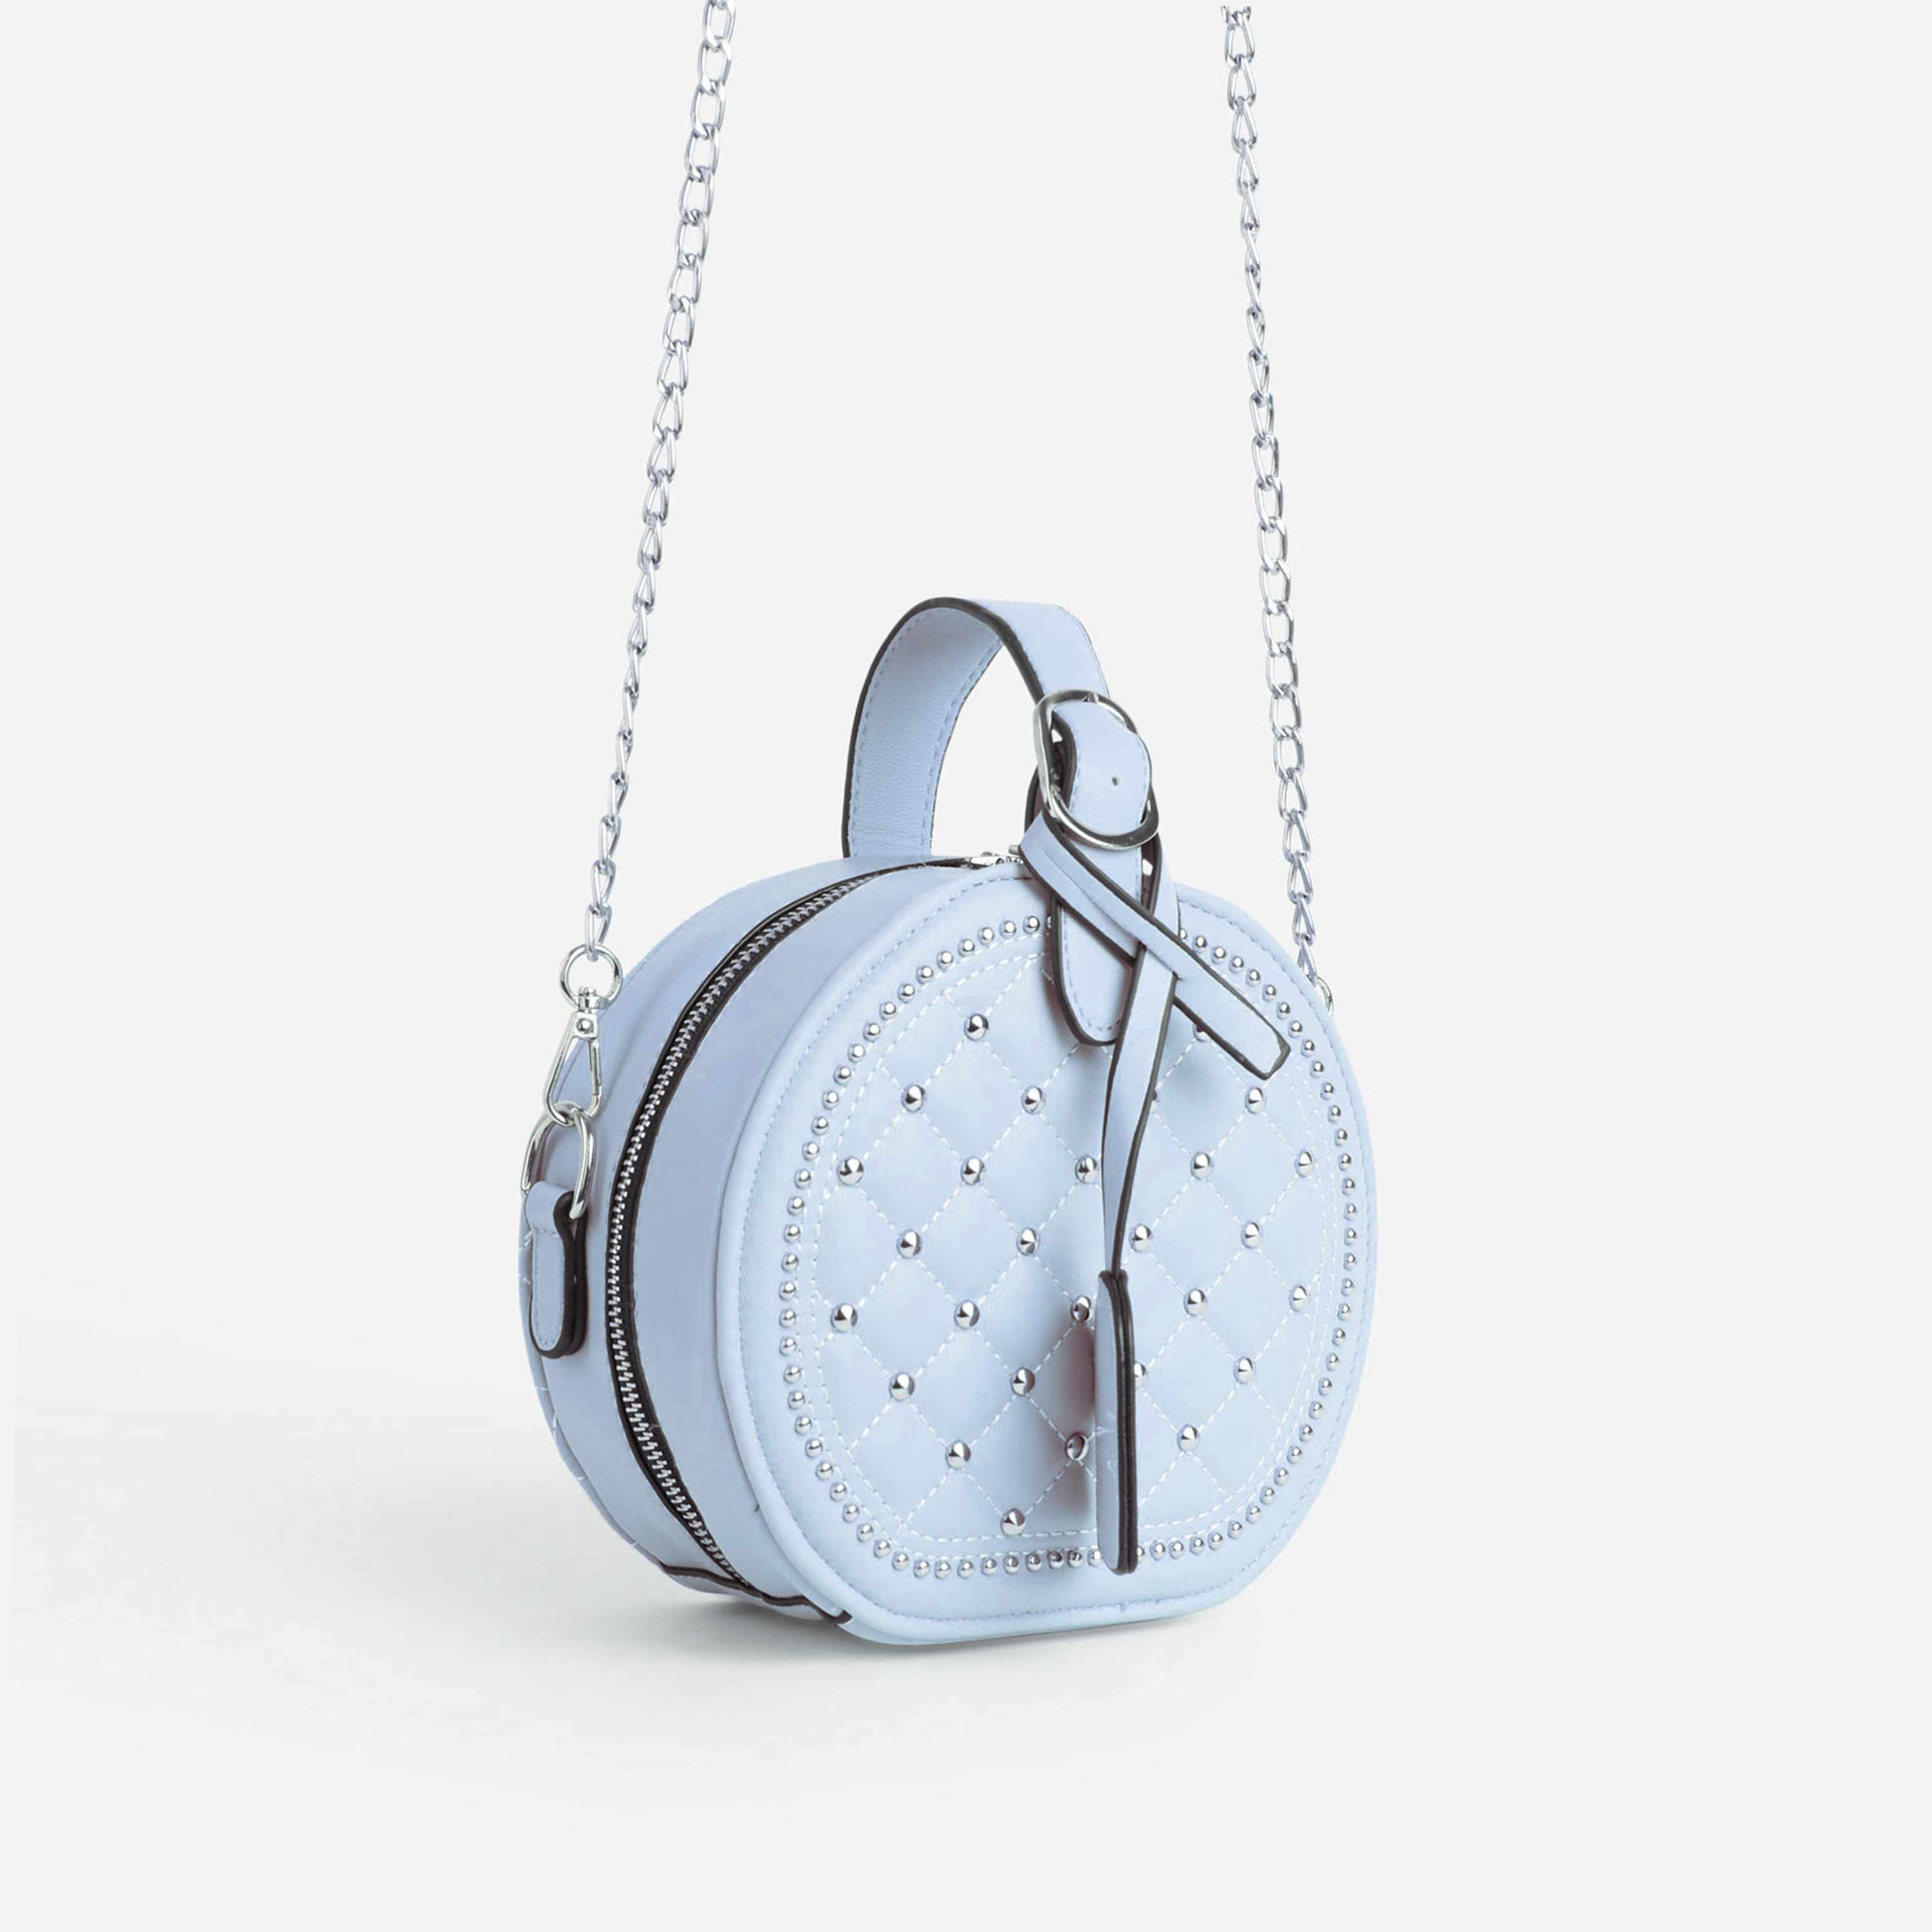 Shellie Quilted Circle Cross Body Bag In Blue Faux Leather